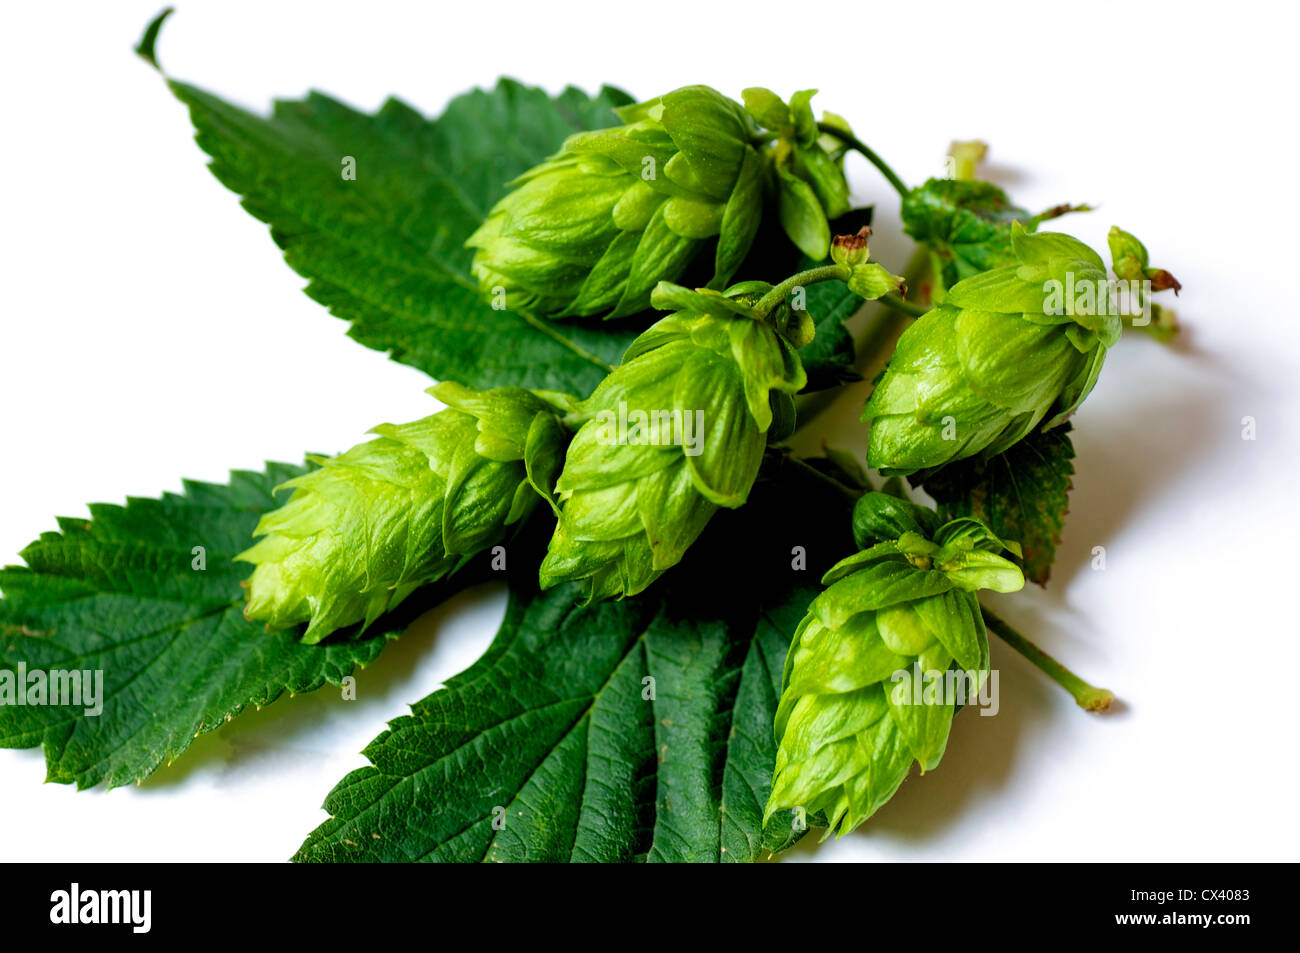 Closeup of Hops umbels on a hops leaf, Hops is one of the most important ingredients of beer. - Stock Image